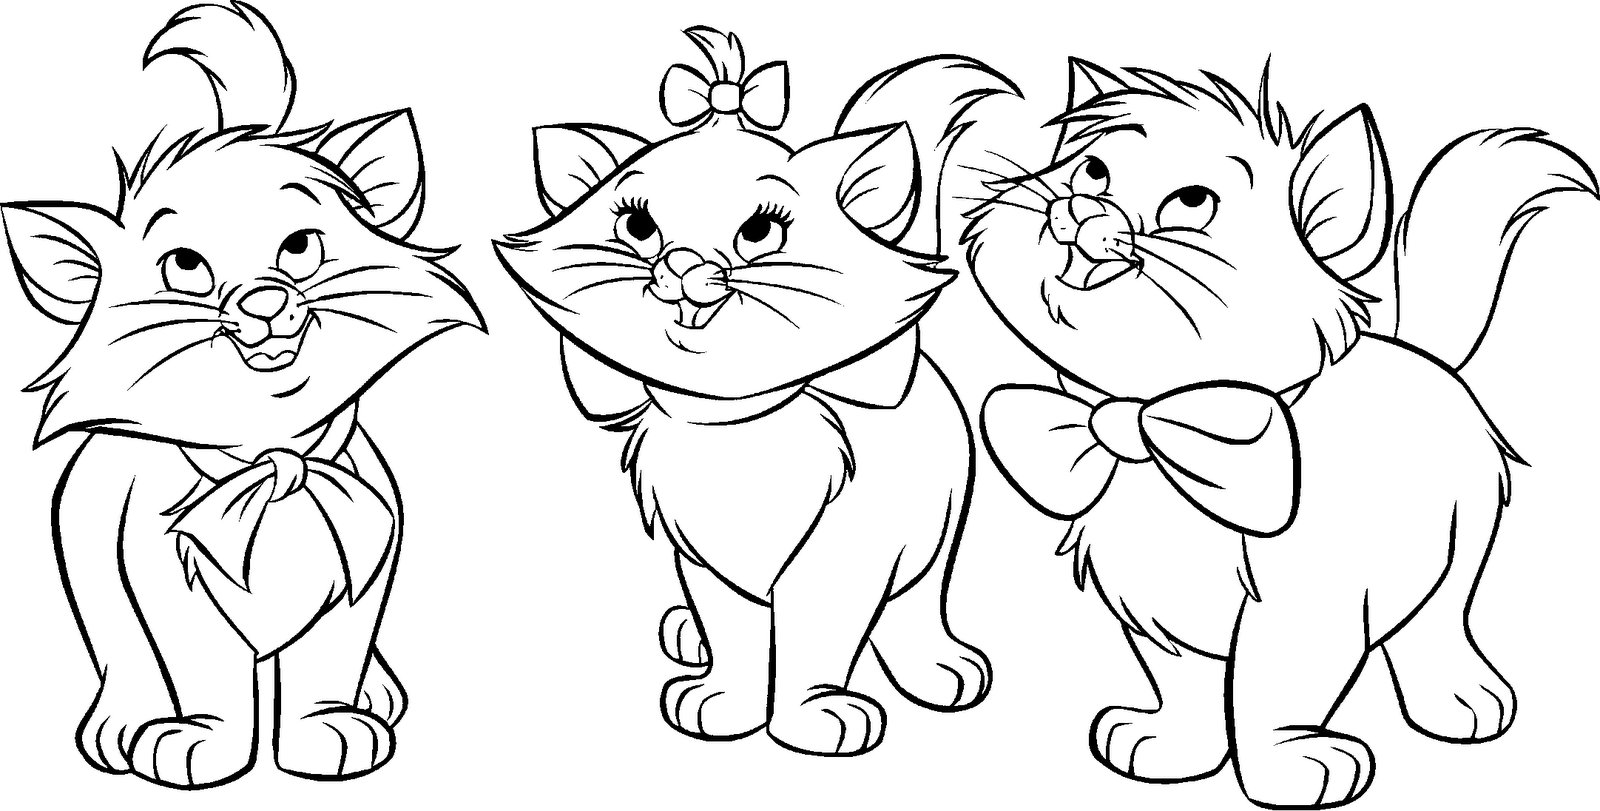 disney aristocats coloring pages - photo#8